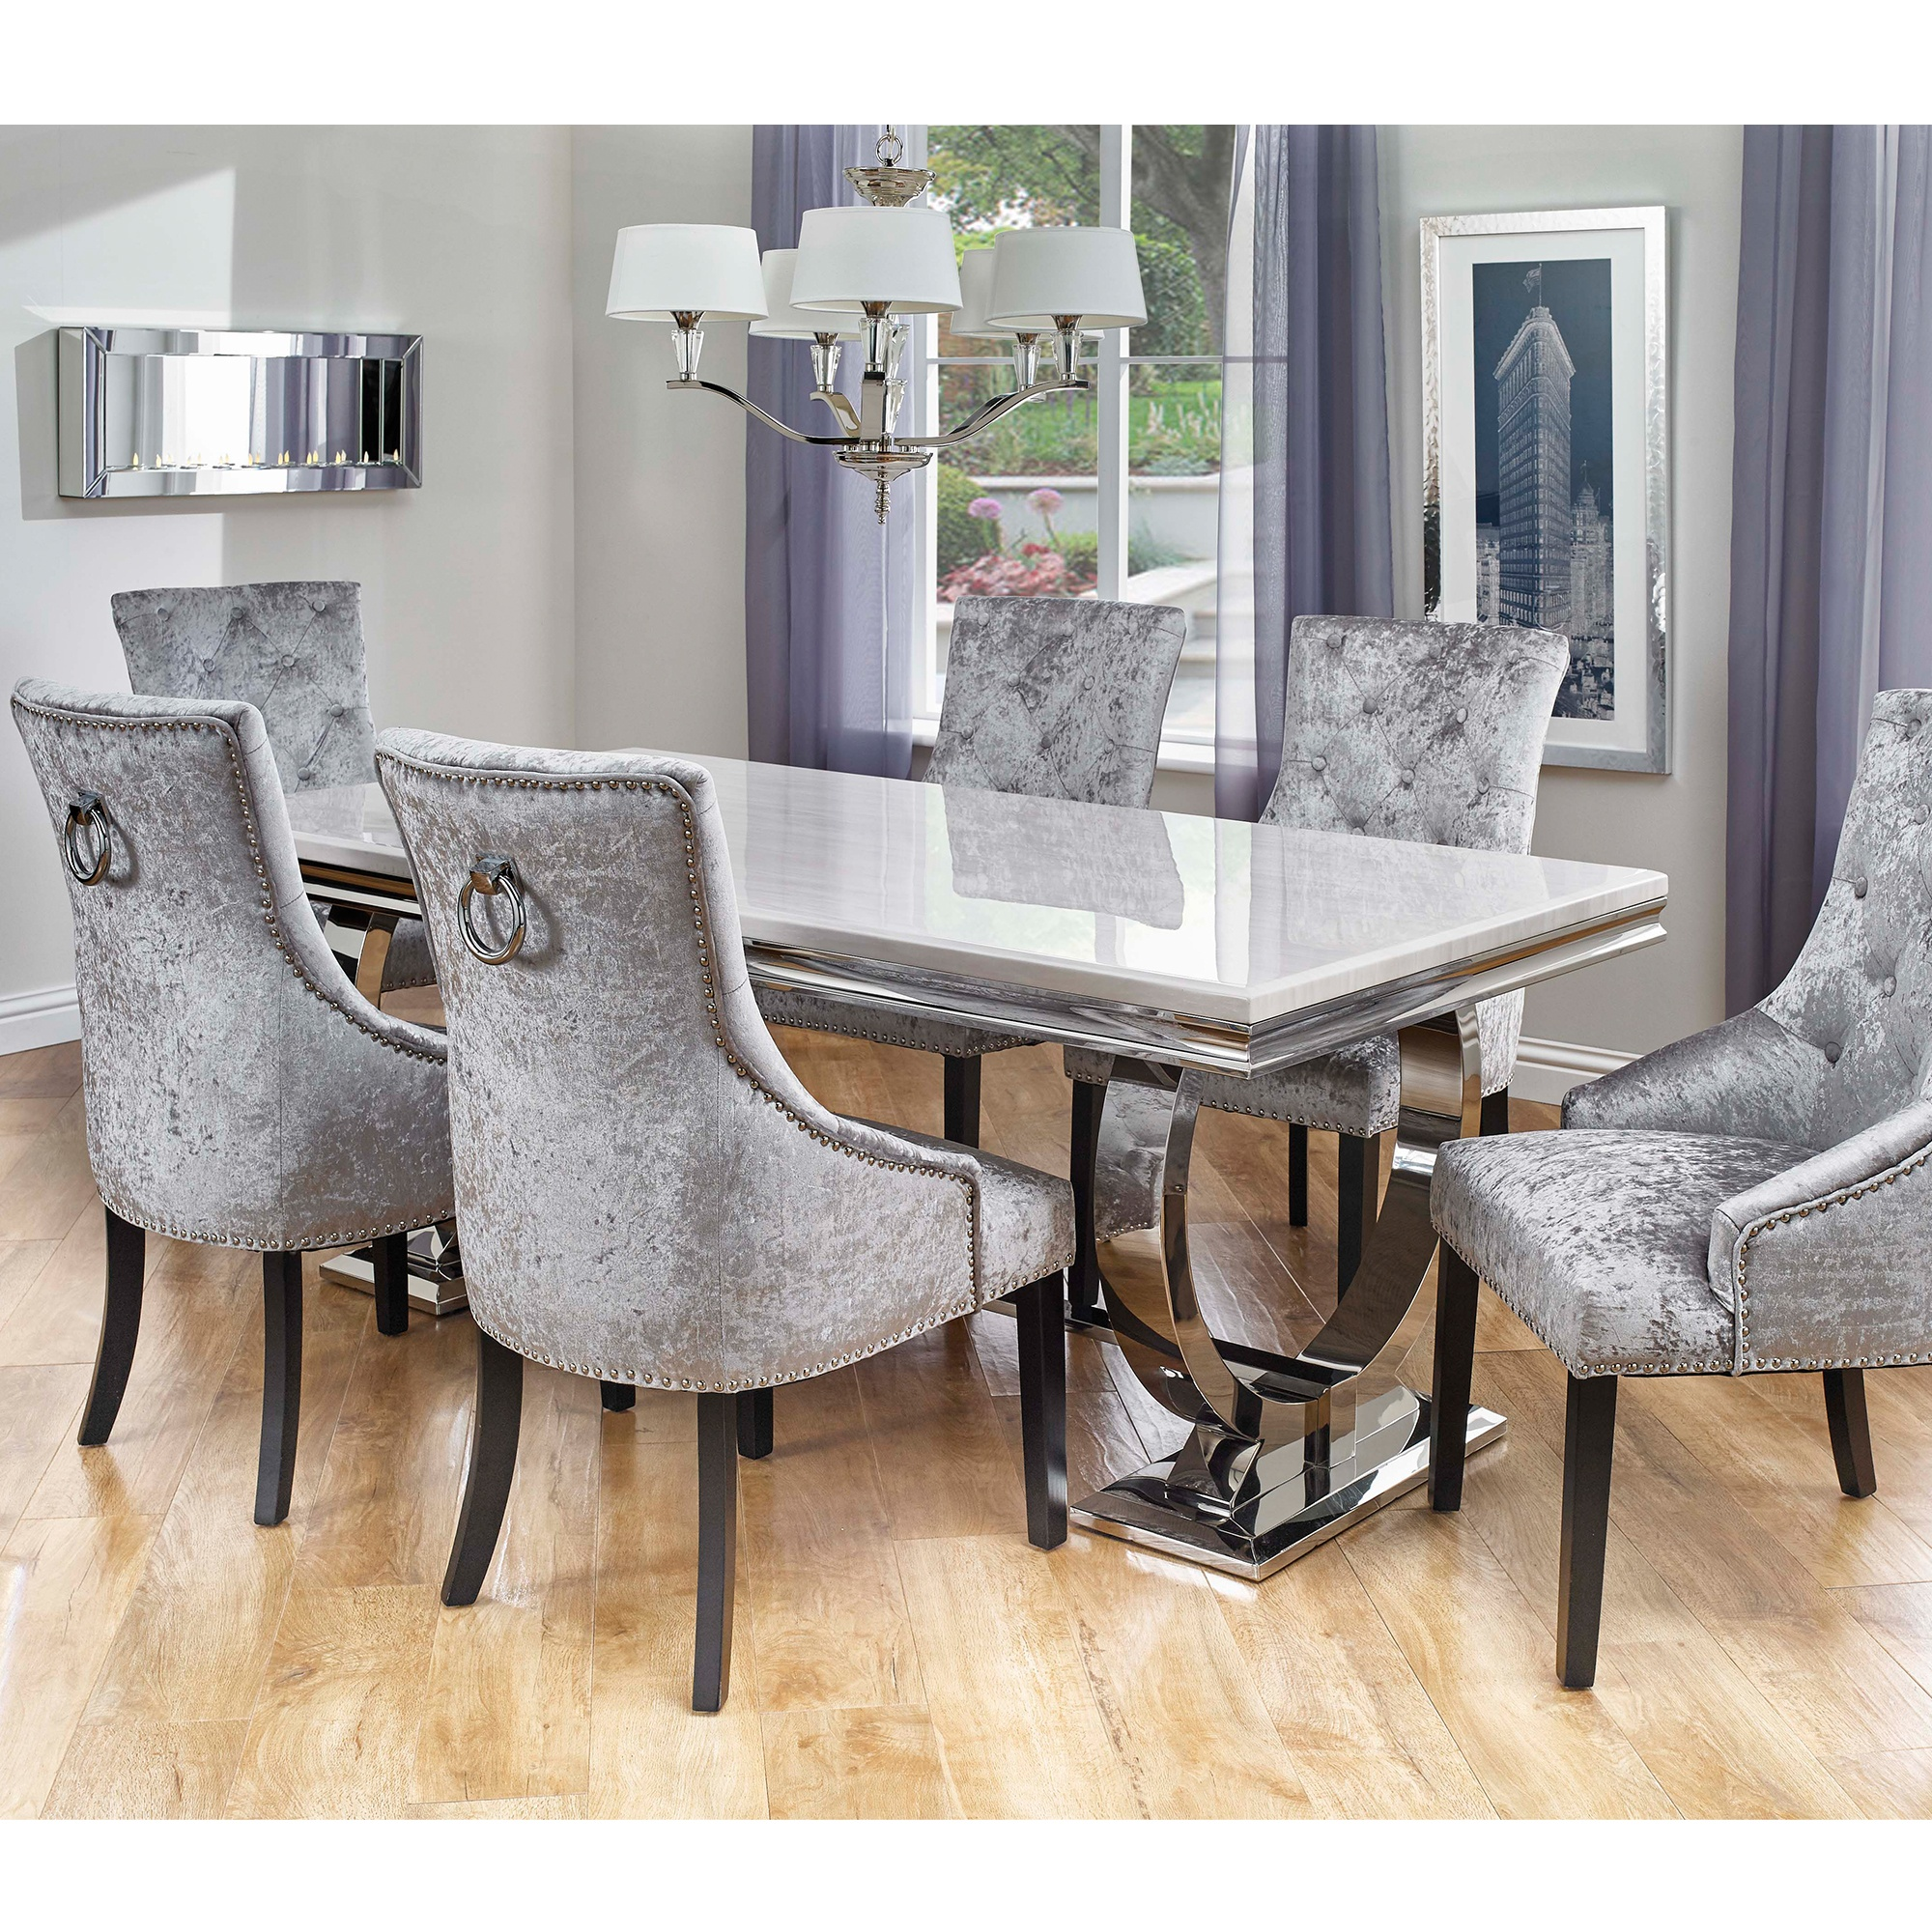 Dining Table And Chairs ~ Cookes collection valentina dining table and chairs